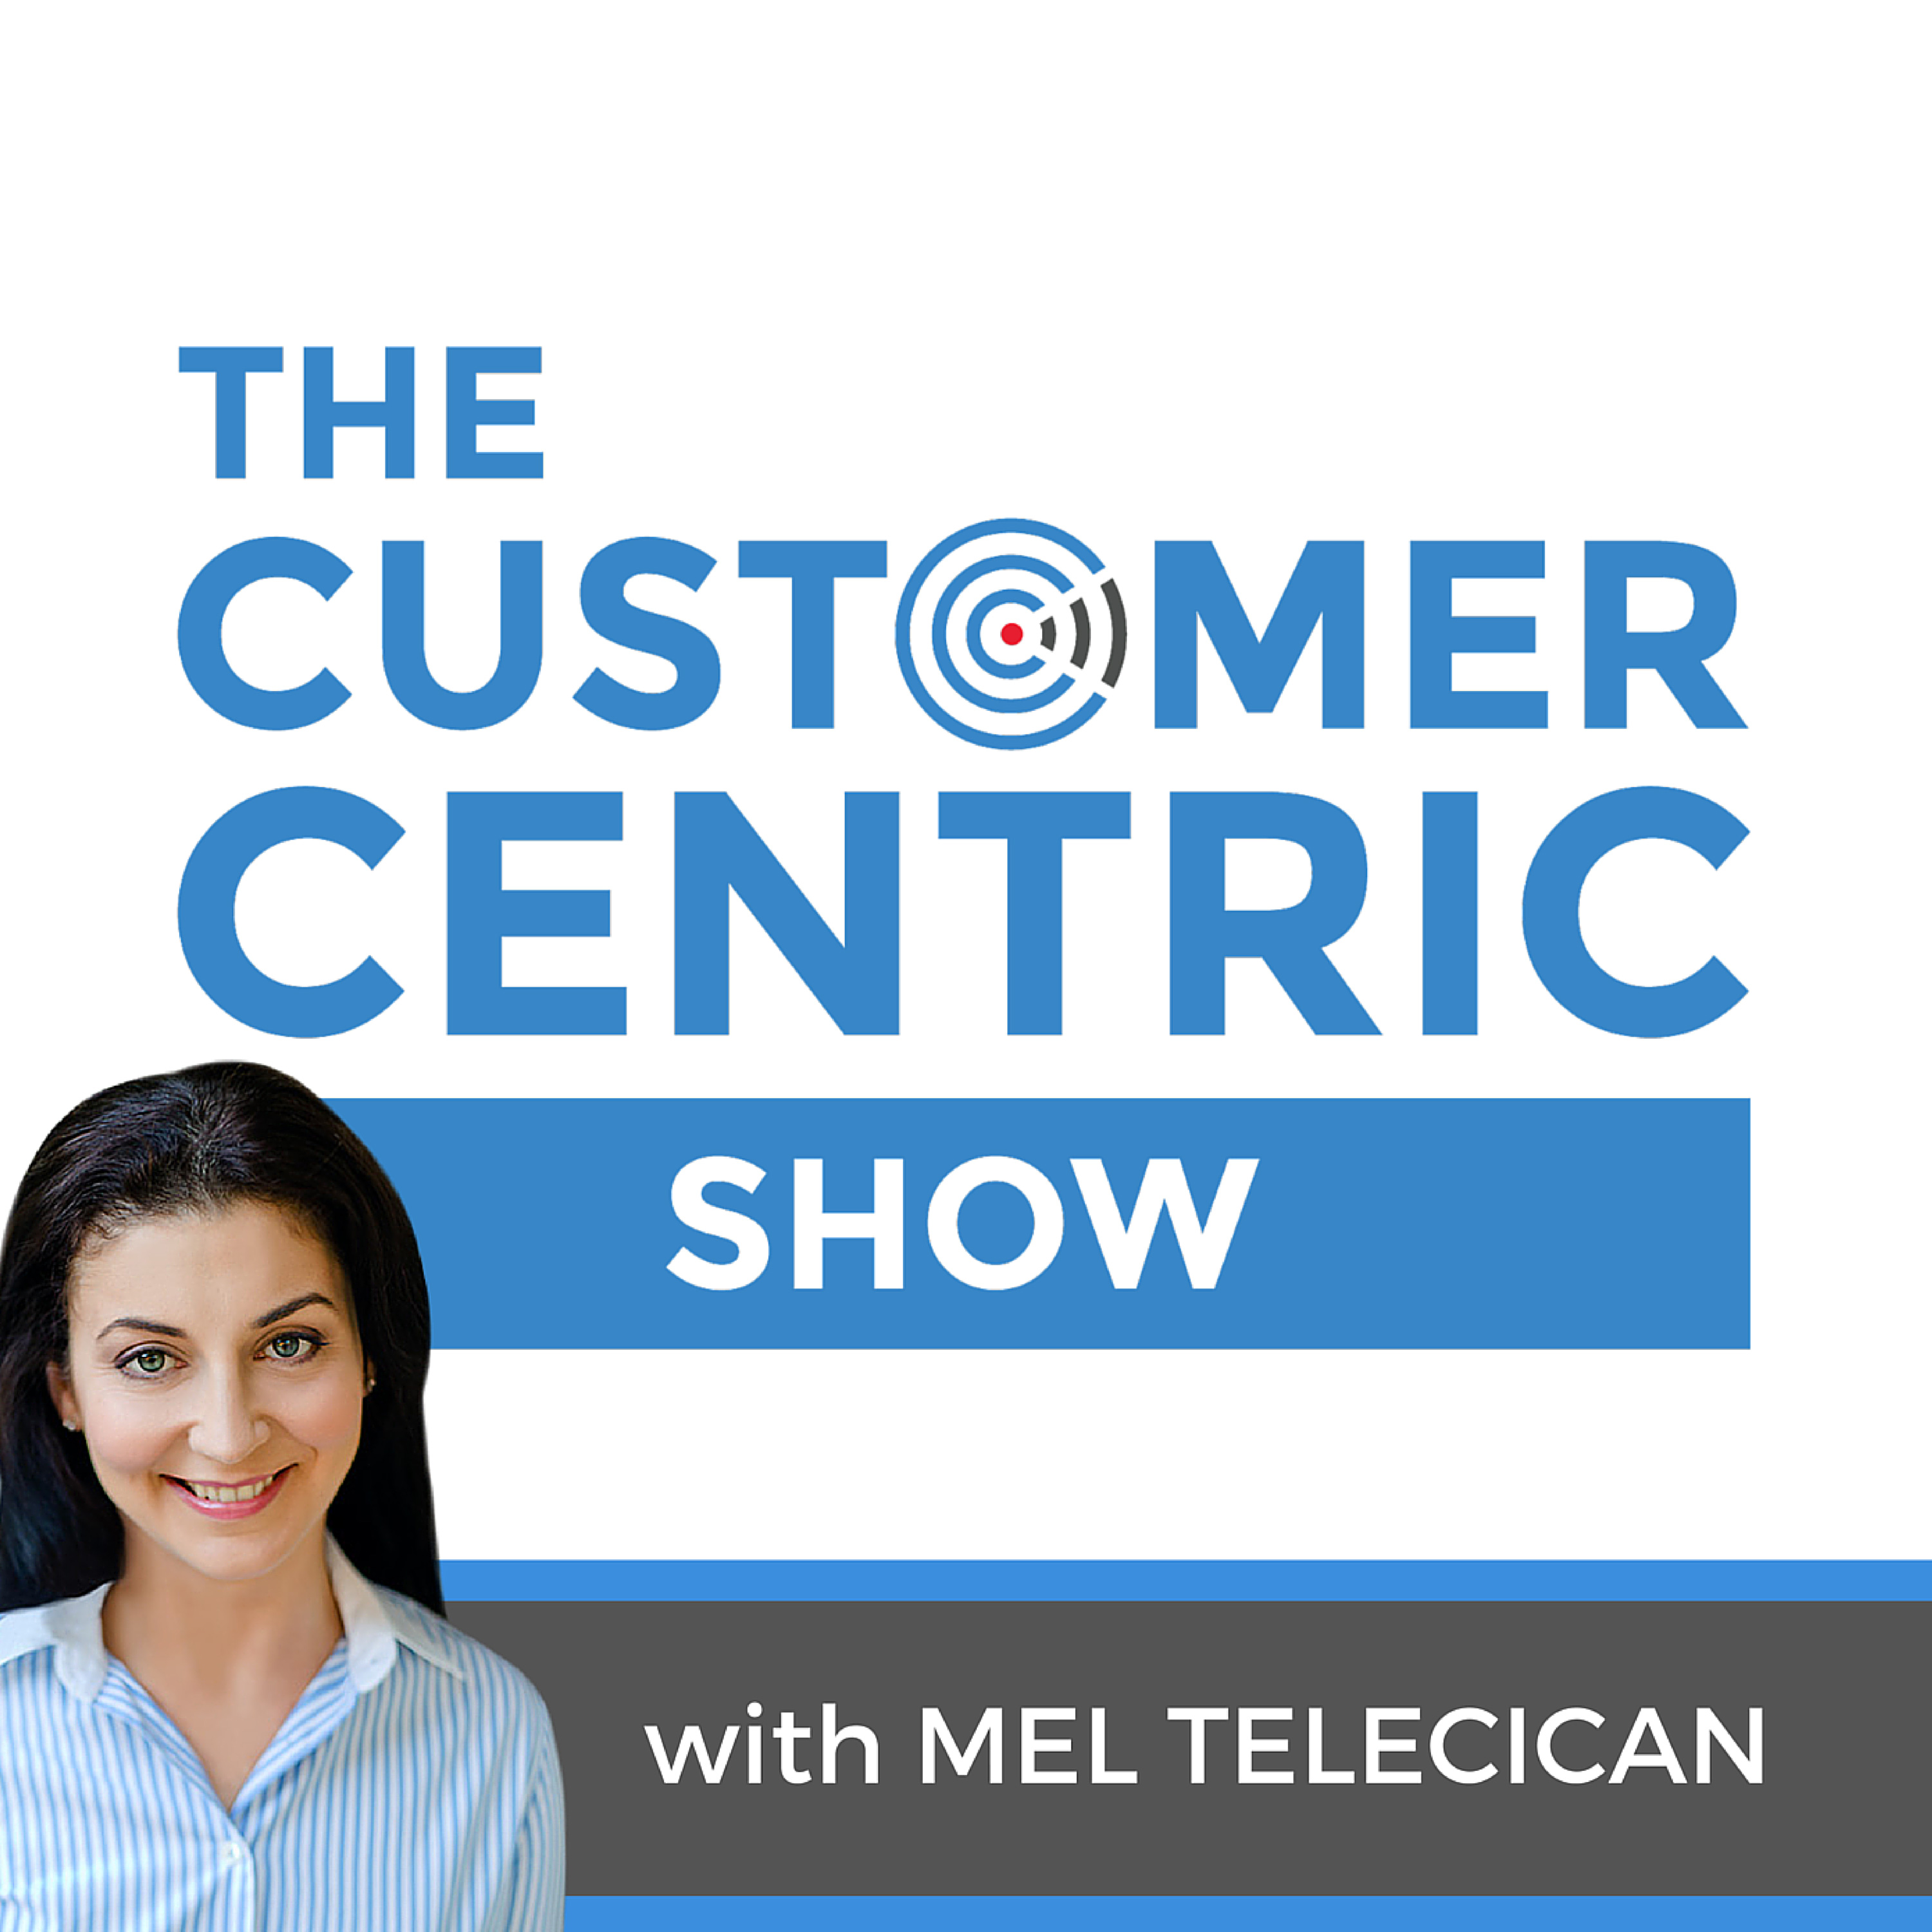 The Customer-Centric Show with Mel Telecican | More Customers, Profits and Freedom in Business.